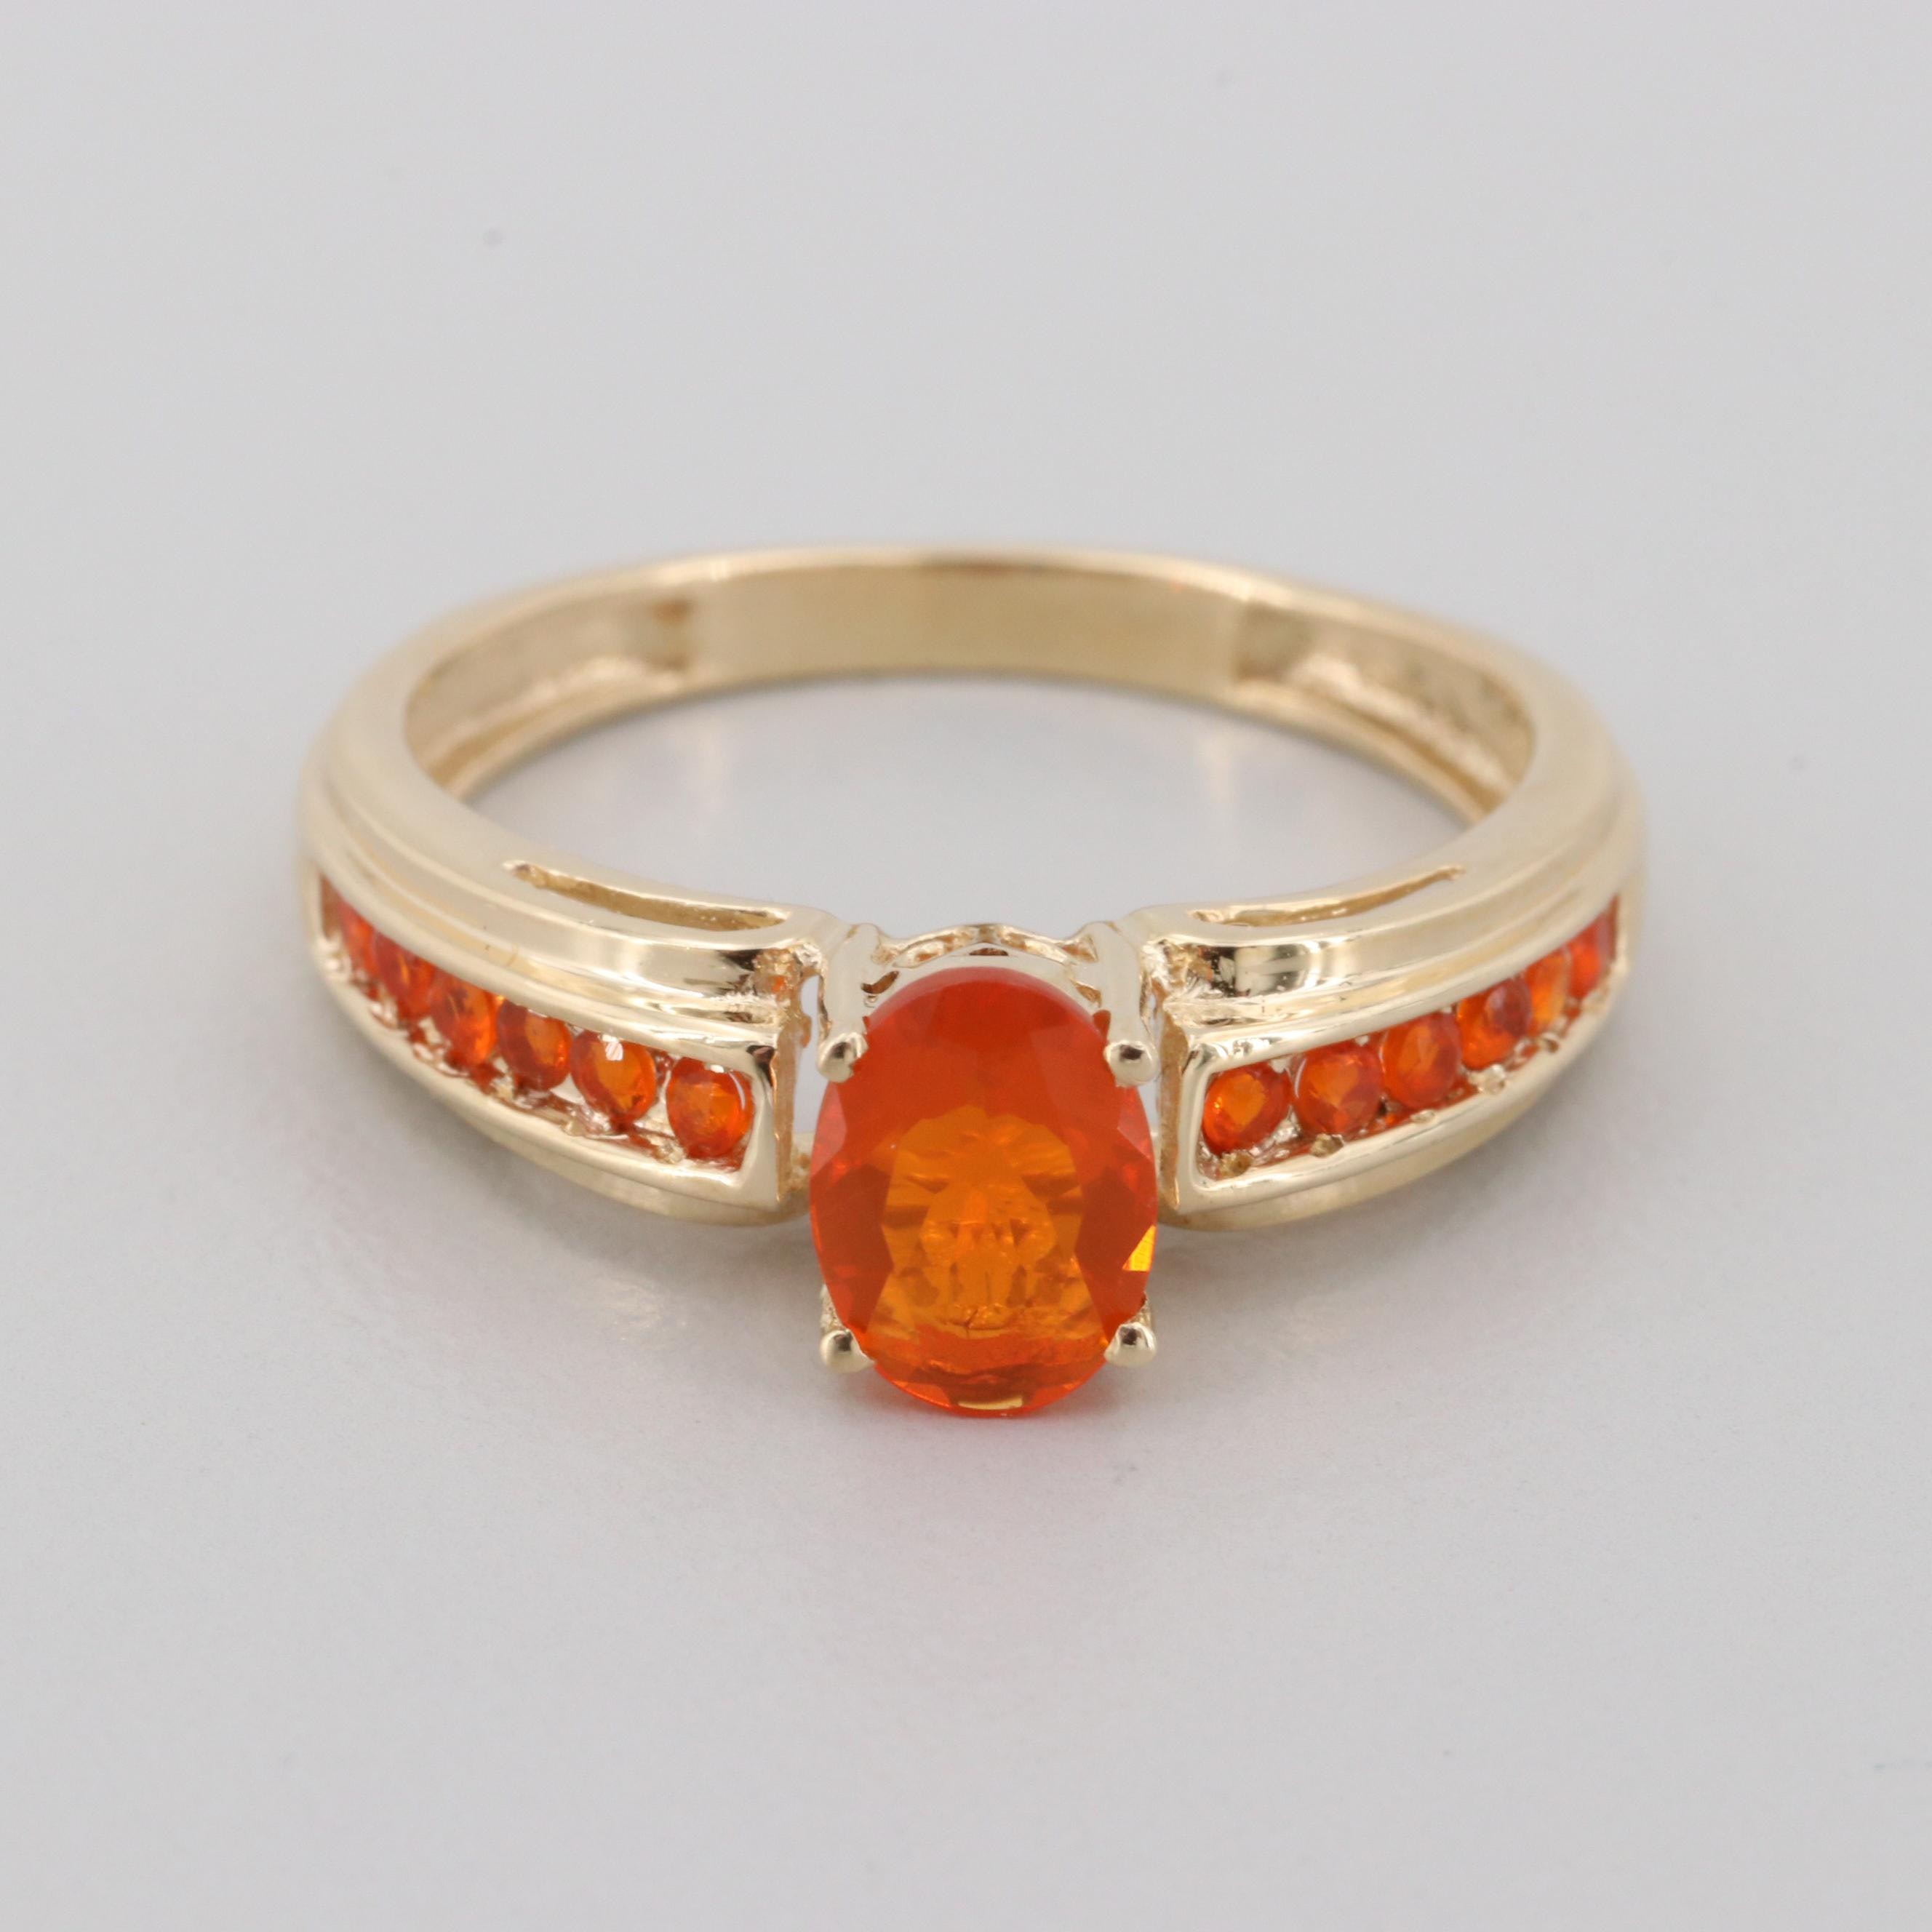 10K Yellow Gold Fire Opal Ring